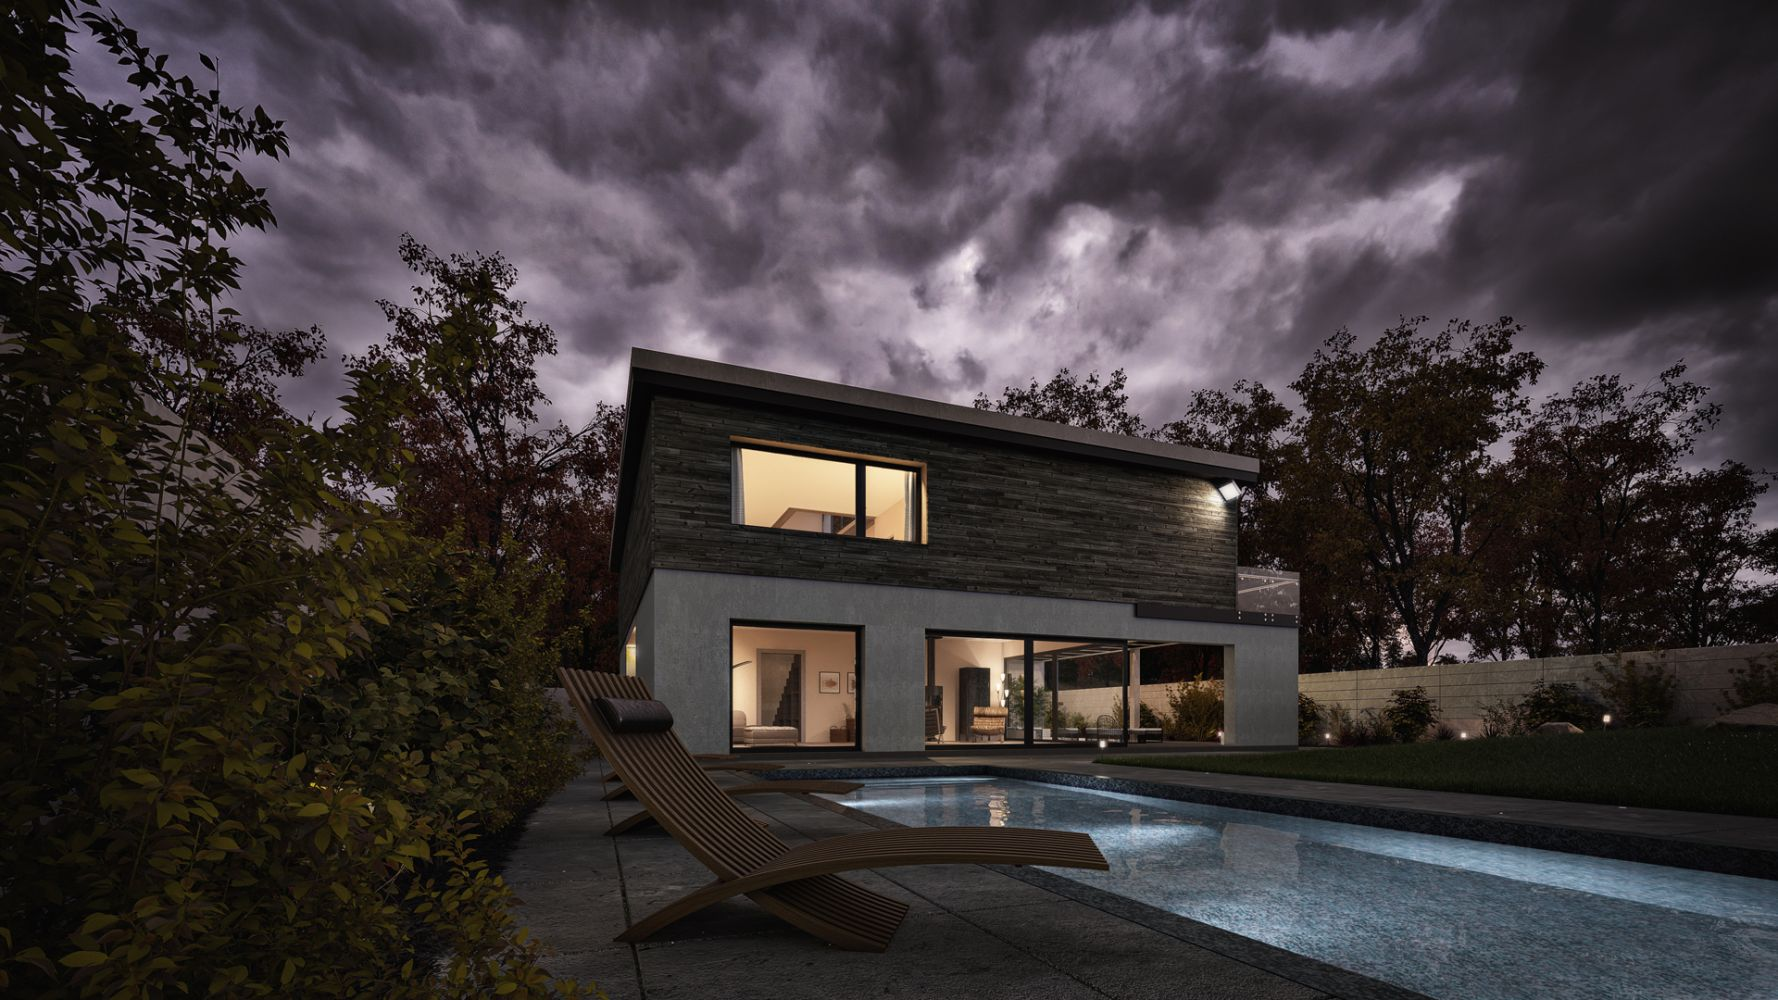 Modern pool house and garden landscaping. Photoreal Architectural Visualisation 3D Renders.